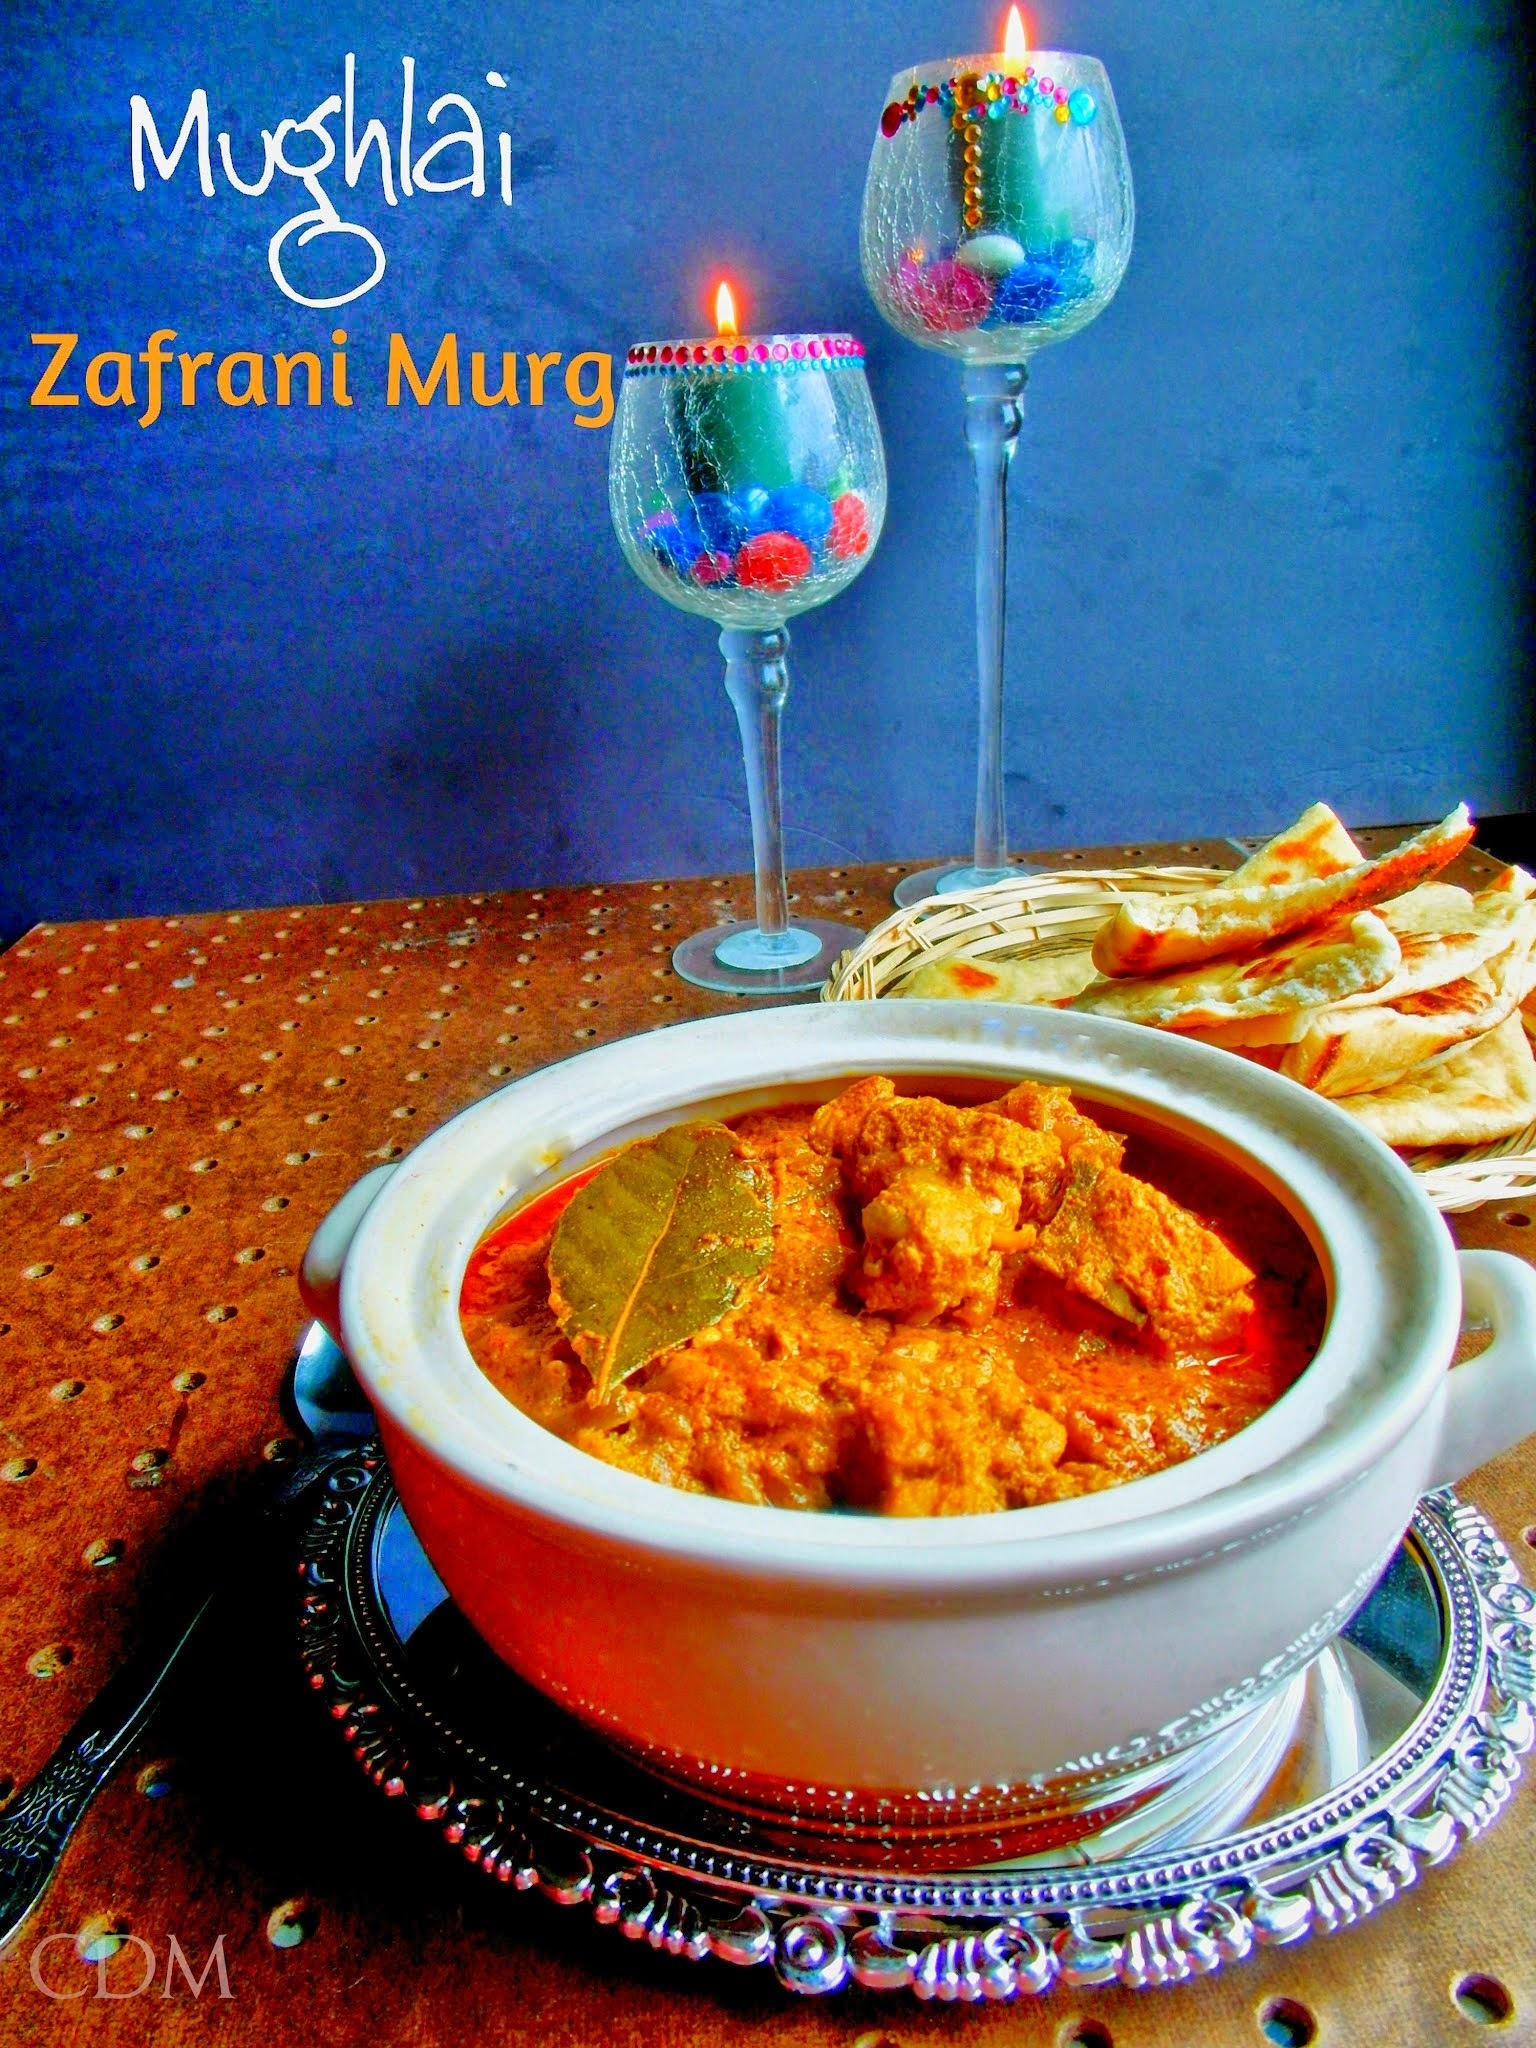 Mughlai Zafrani Murg|A Chicken curry made with saffron and cashewnut paste in Mughlai style